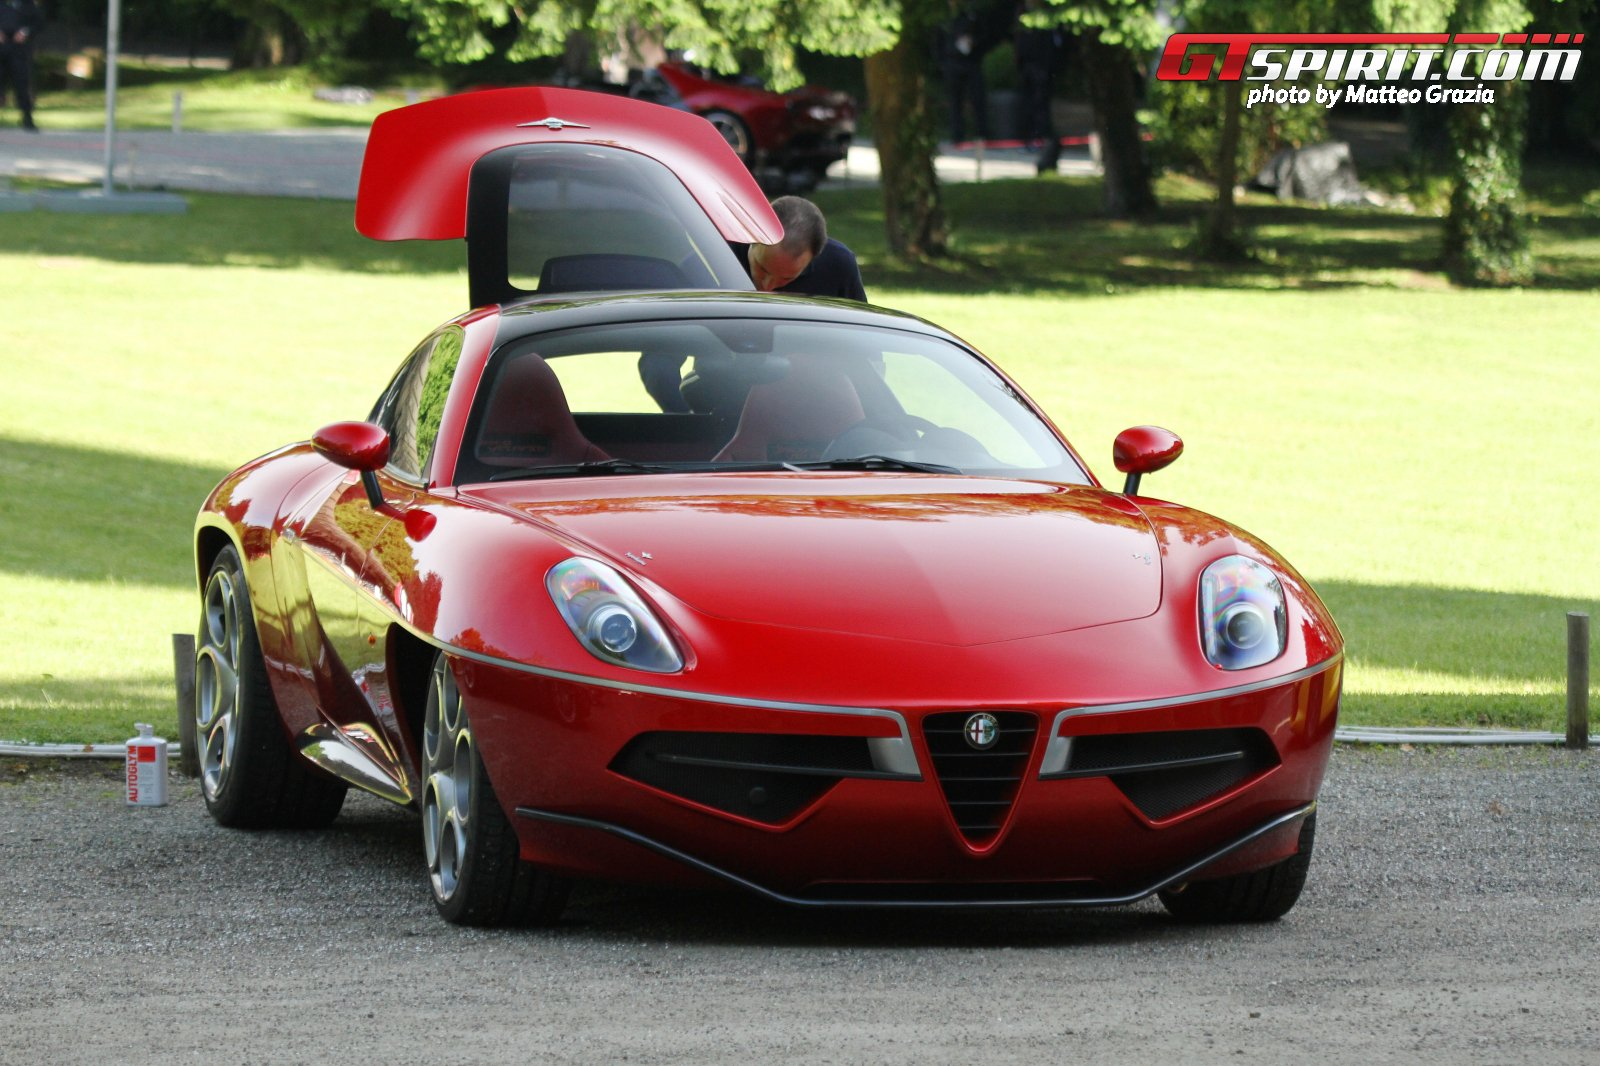 Alfa Romeo Disco Volante Wins Design Award For Concept Cars And Prototypes Gtspirit